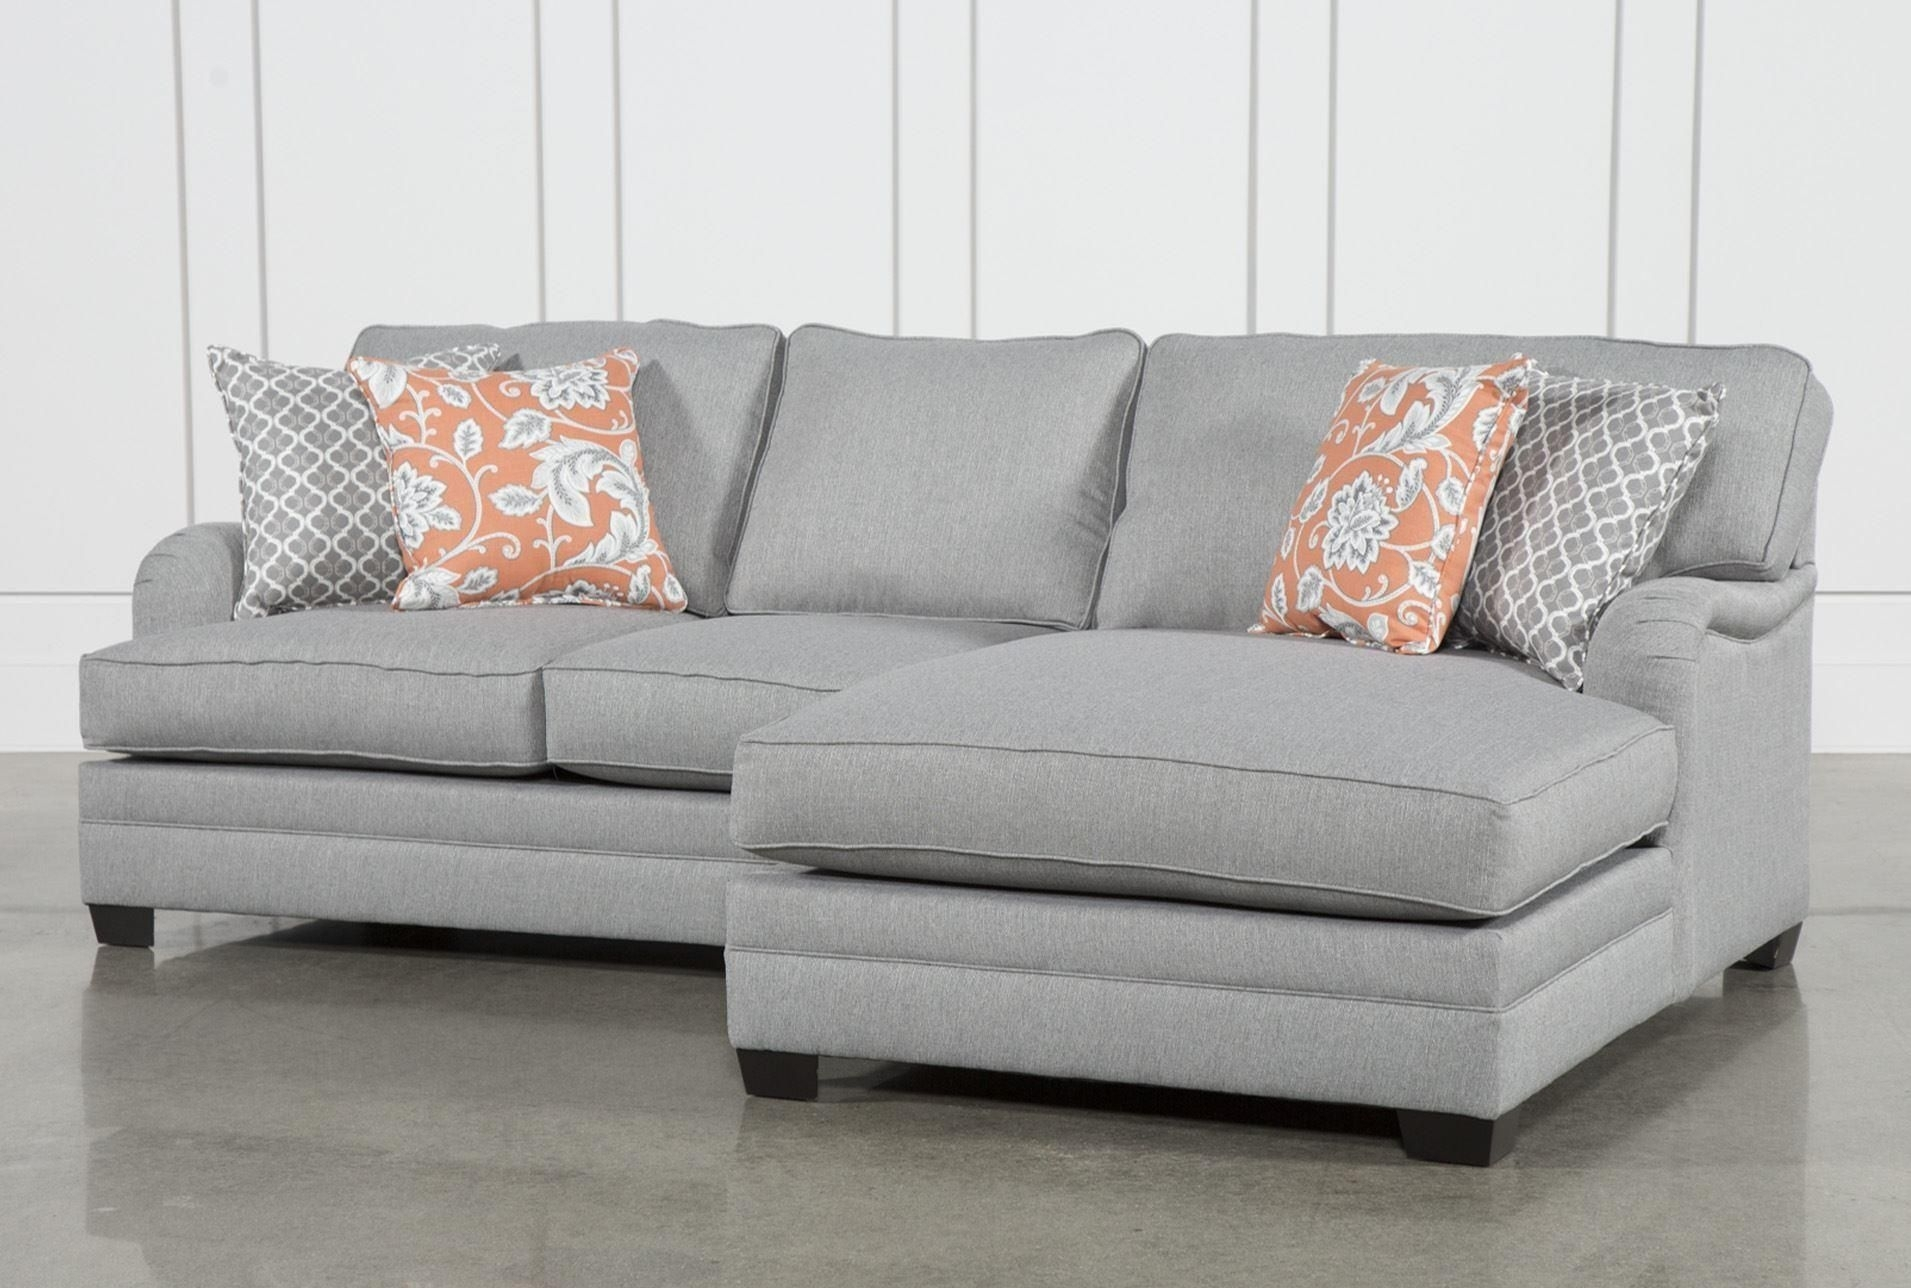 Marissa 2 Piece Sectional W/raf Chaise For Taren Reversible Sofa/chaise Sleeper Sectionals With Storage Ottoman (Image 12 of 25)